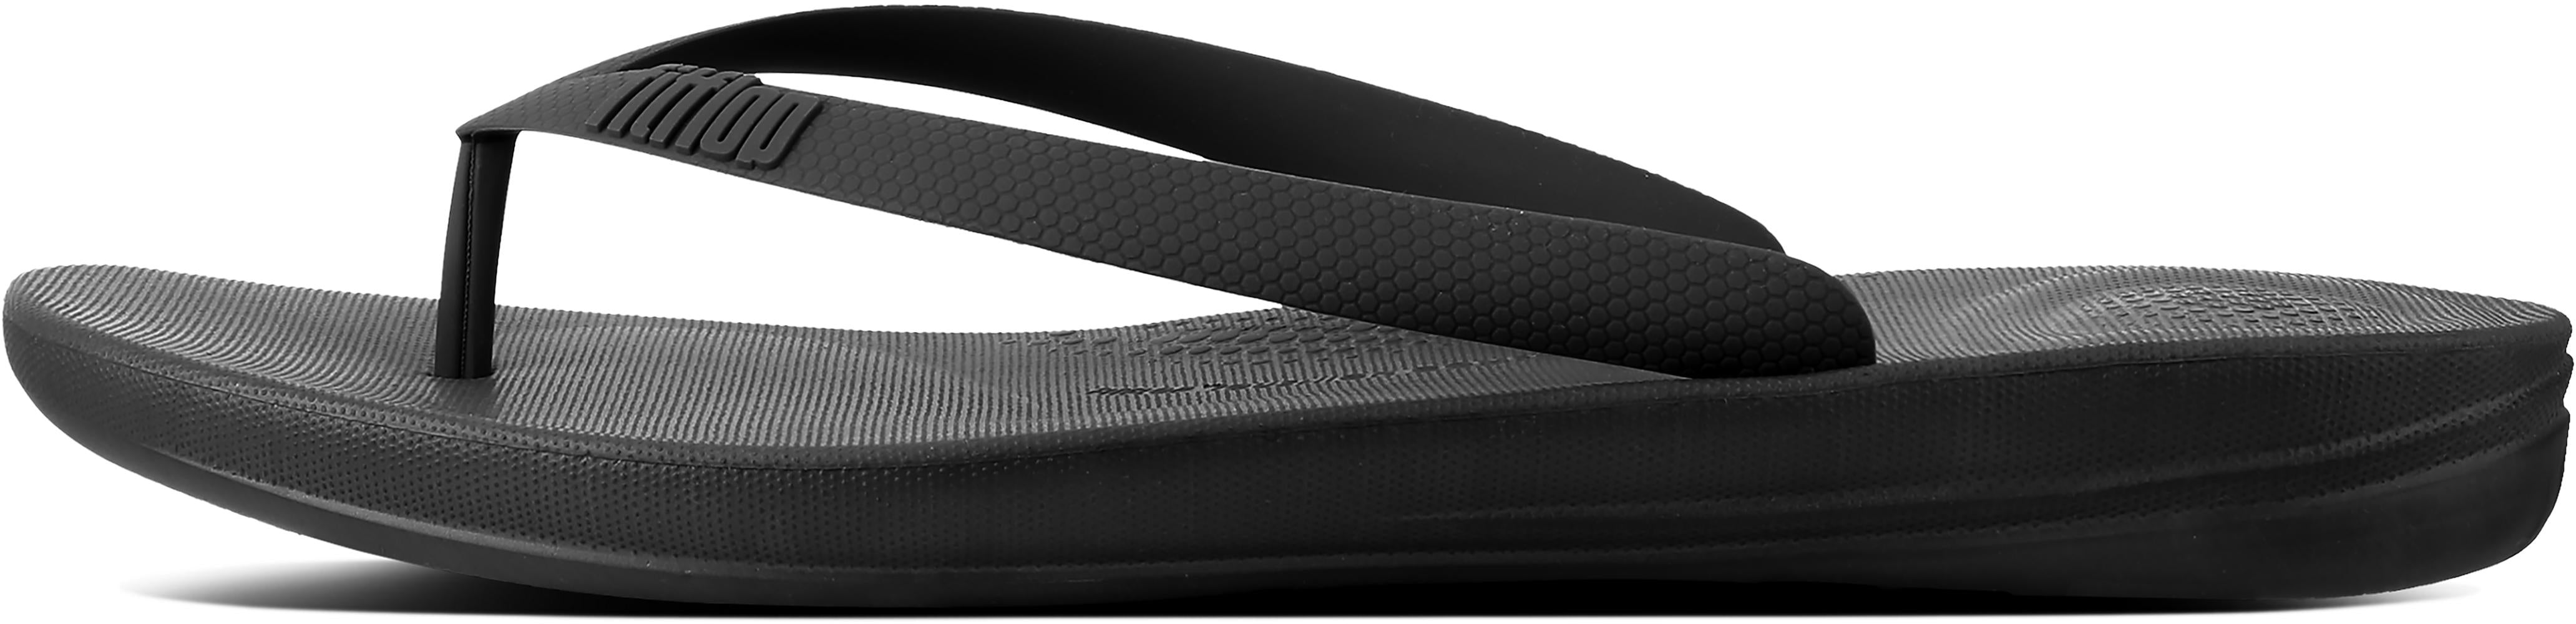 Iqushion Ergonomic Flip-Flops in Black from the side